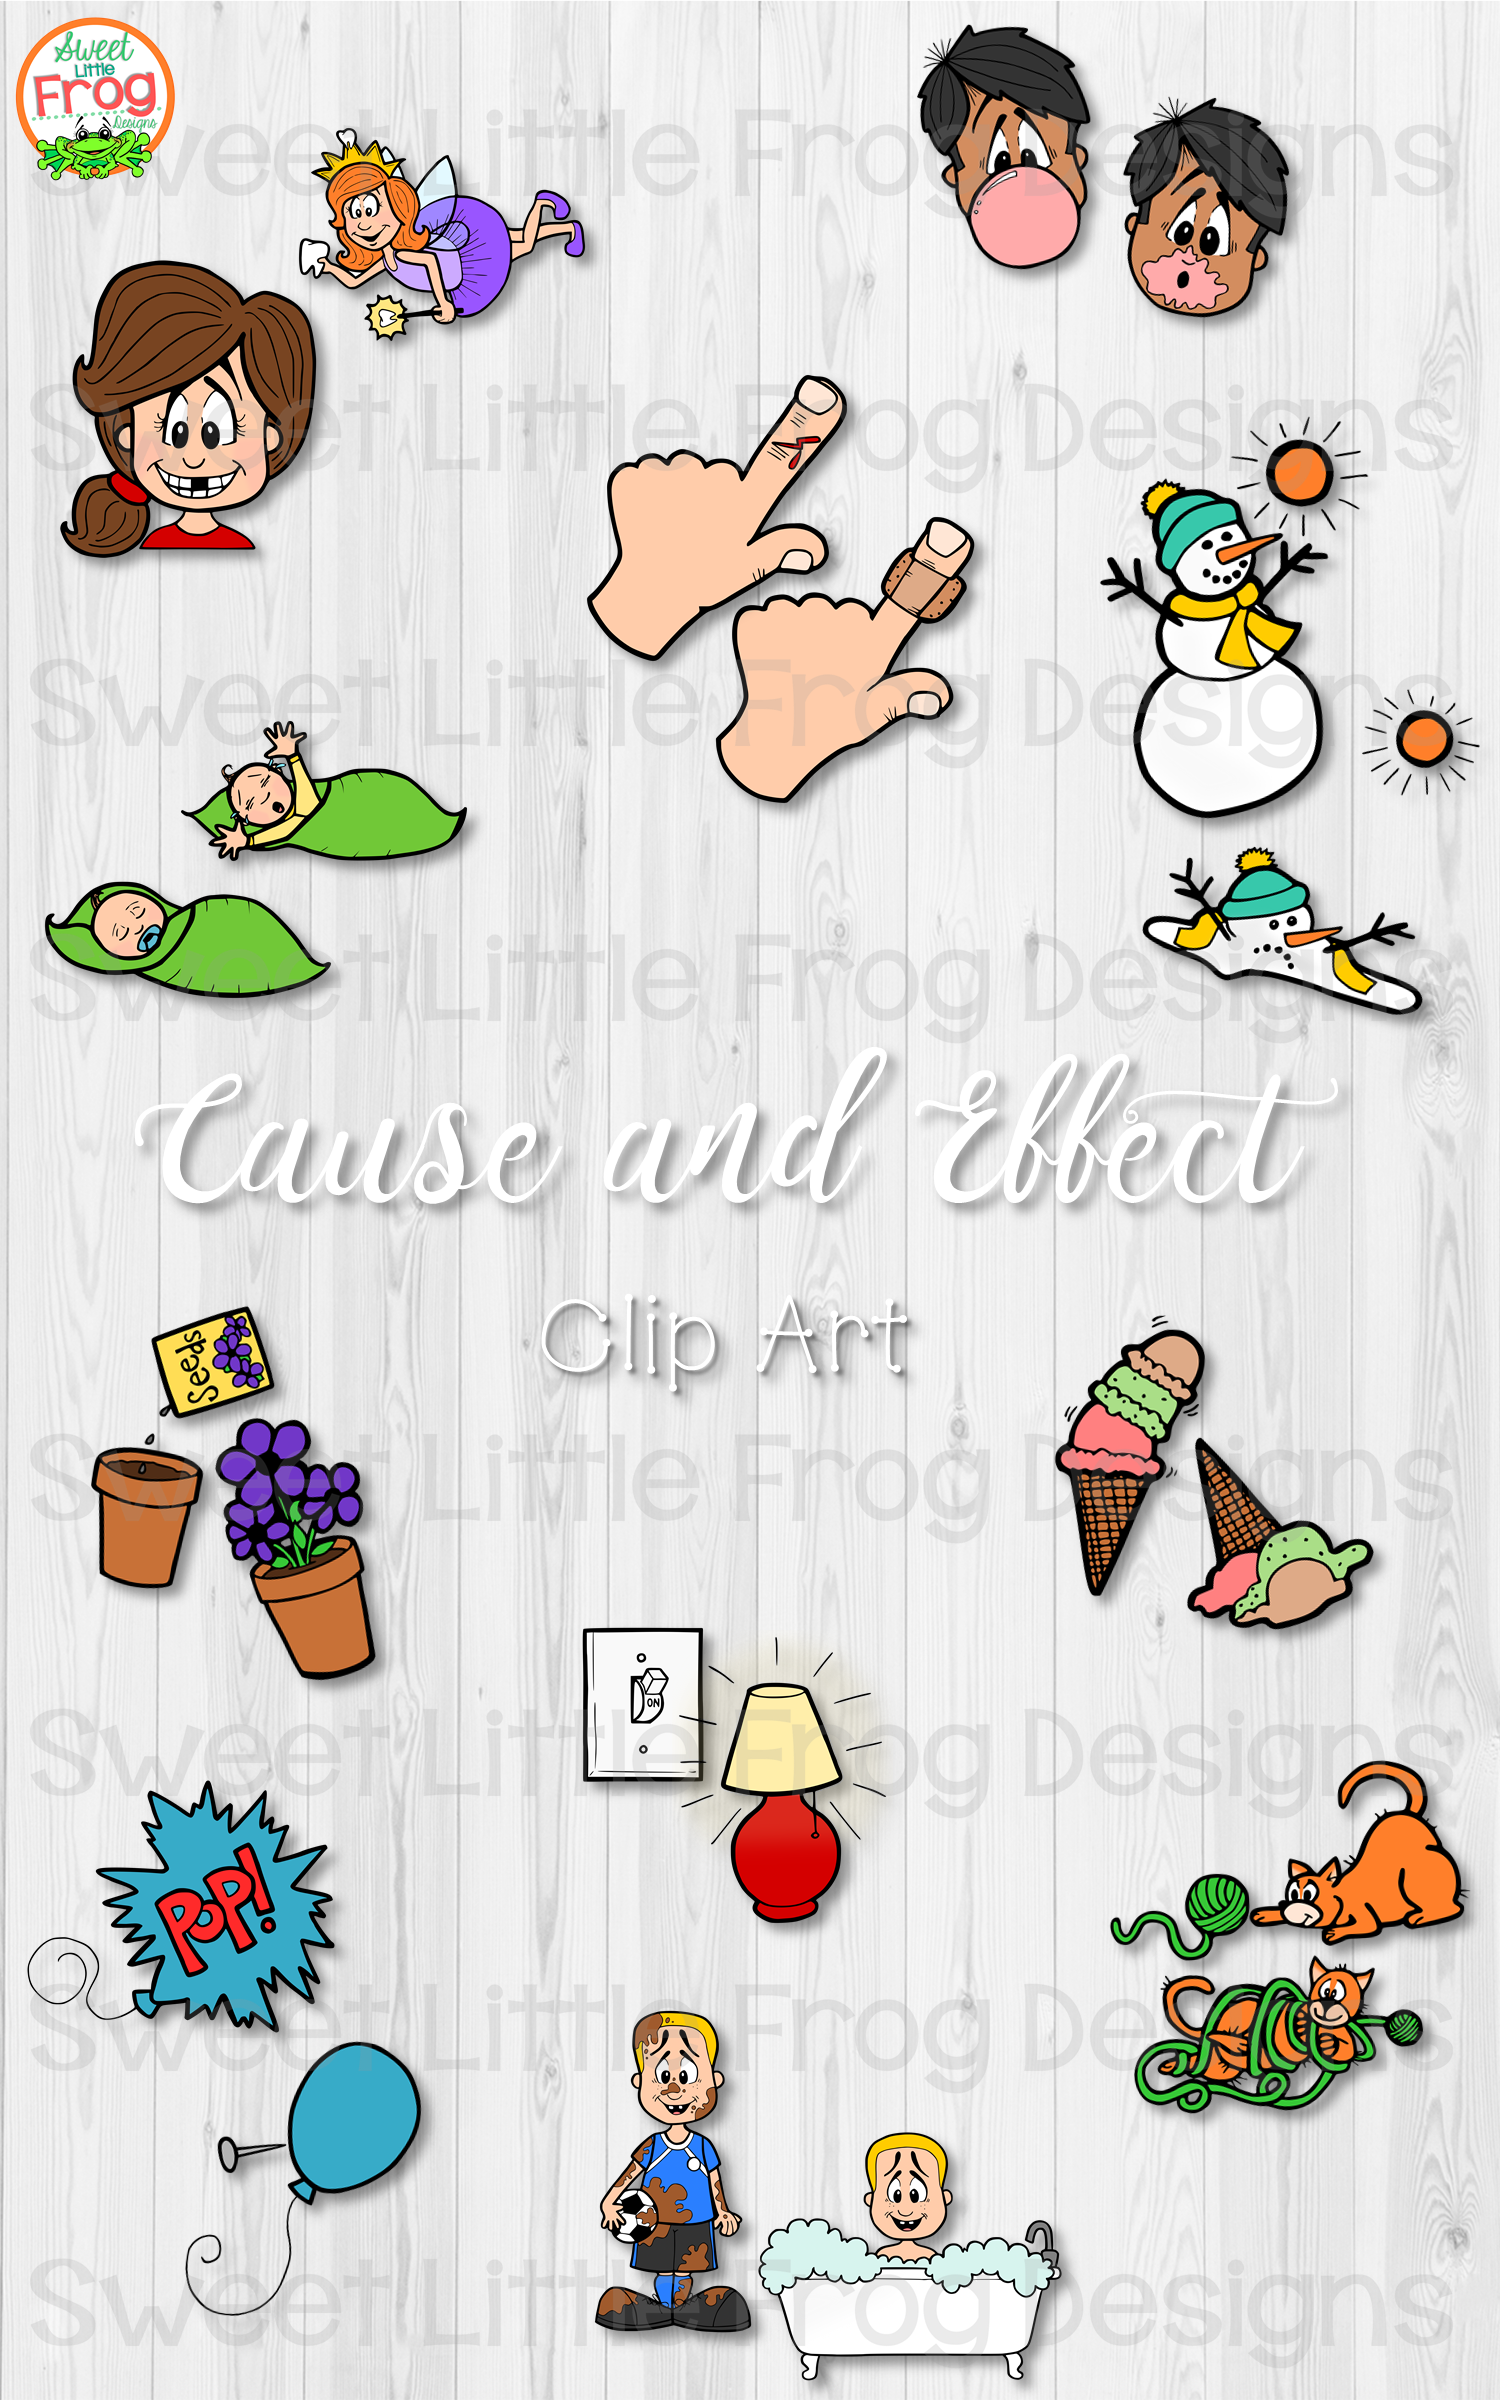 Cause And Effect Clip Art